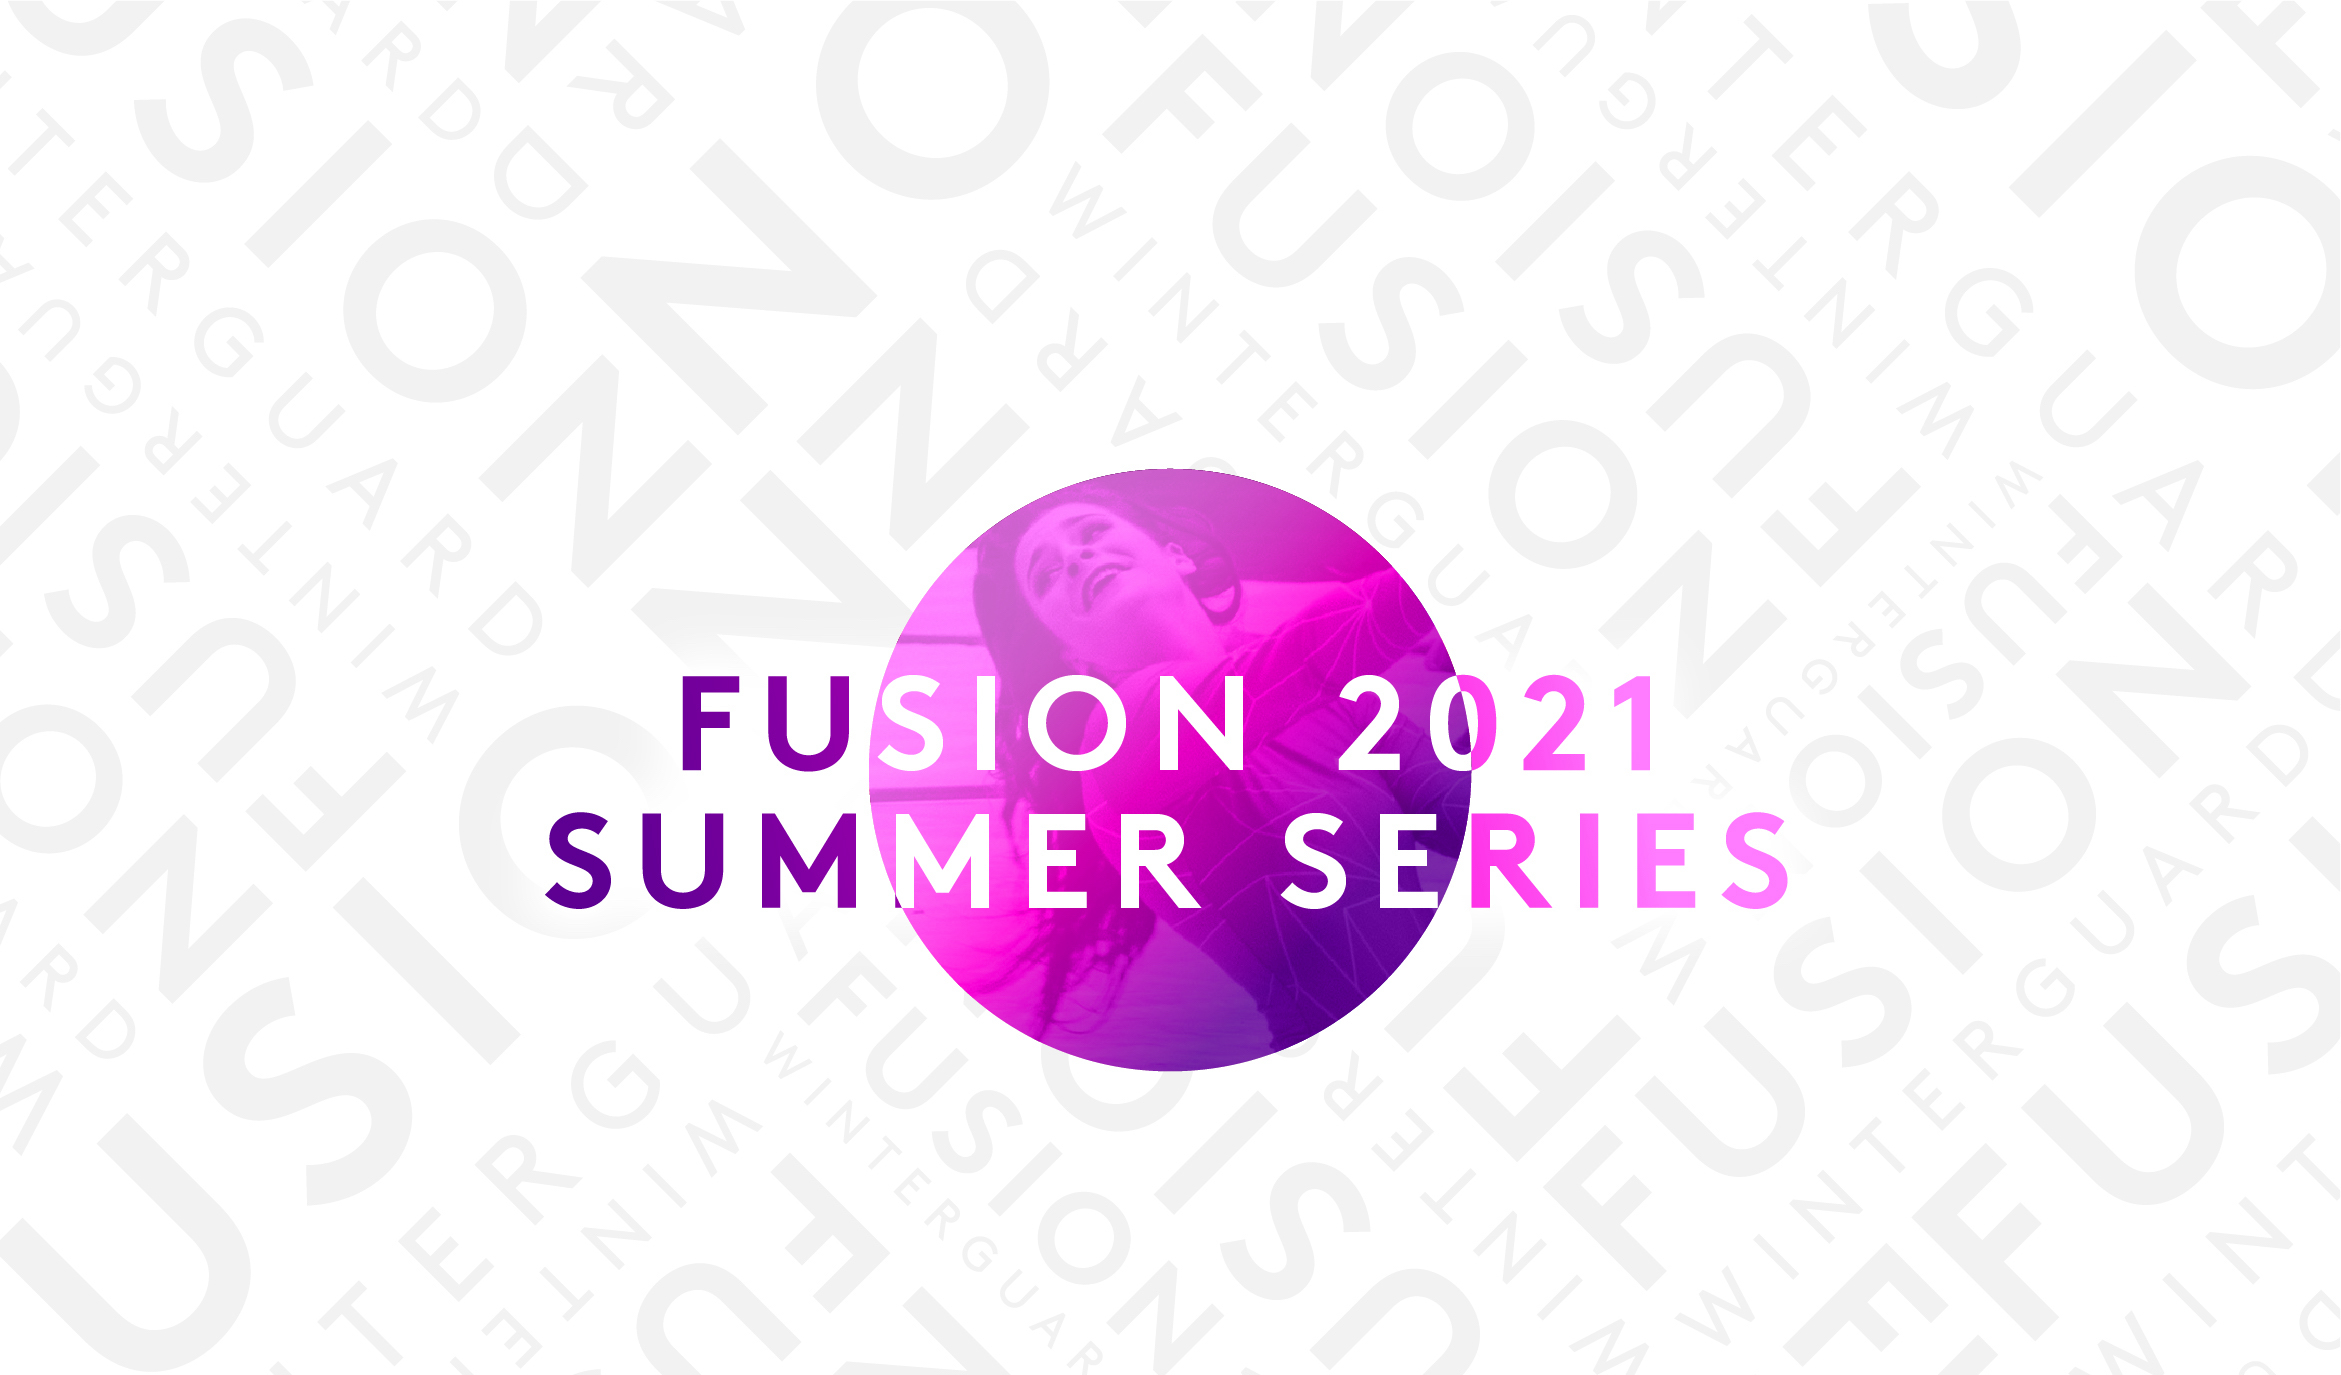 fusion_2021_summer_series